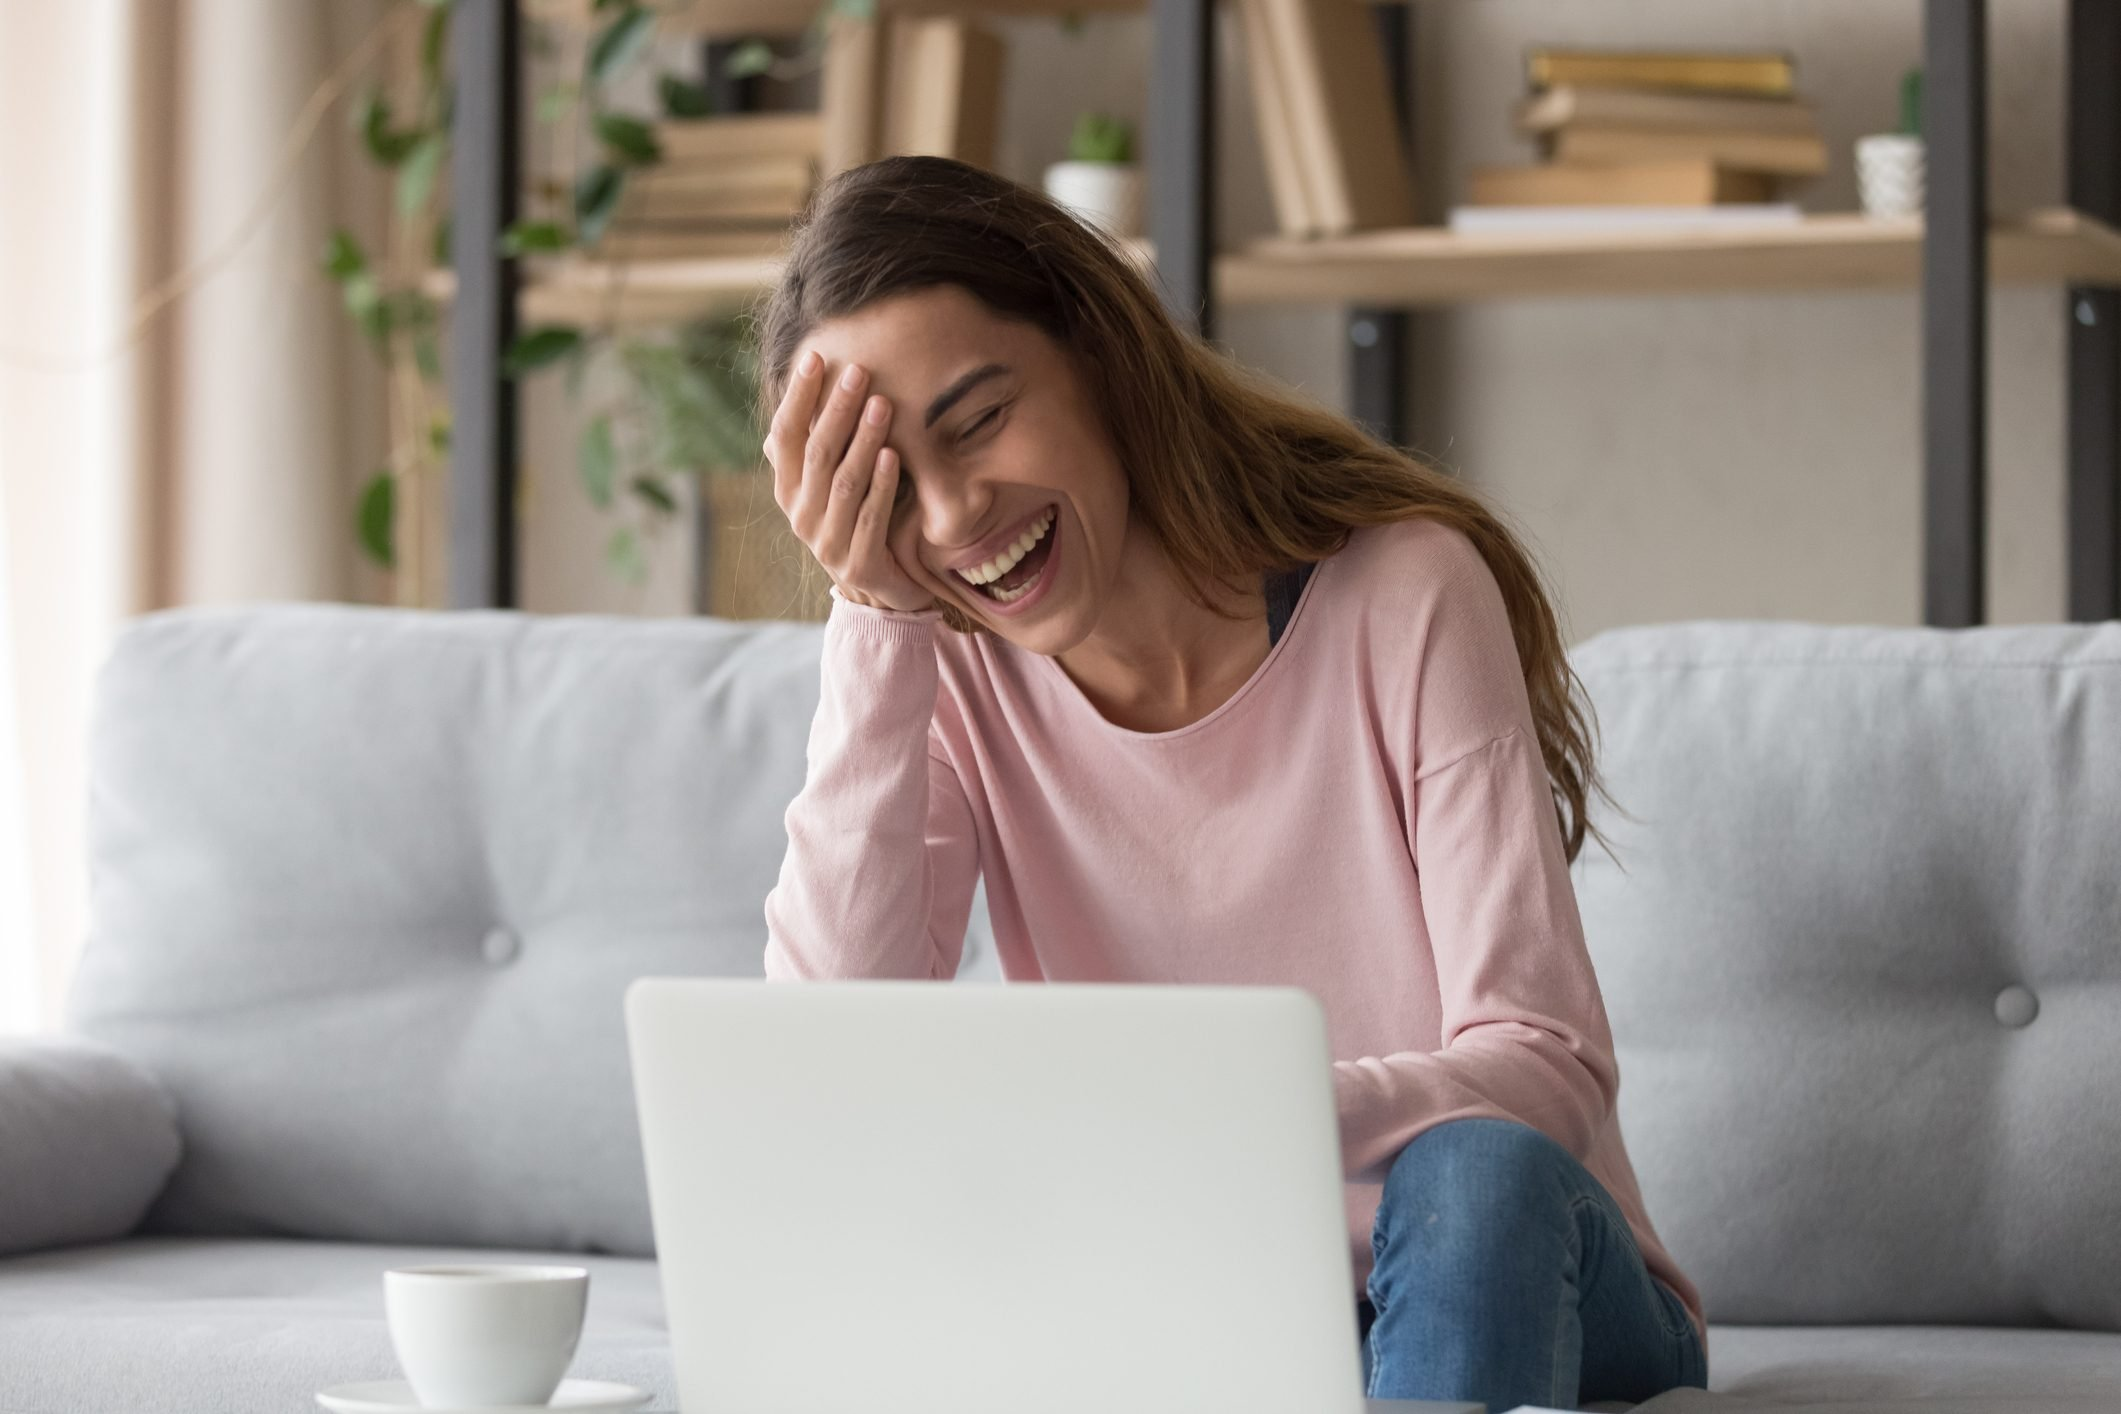 Laughing woman sitting on couch watching comedy movie on laptop